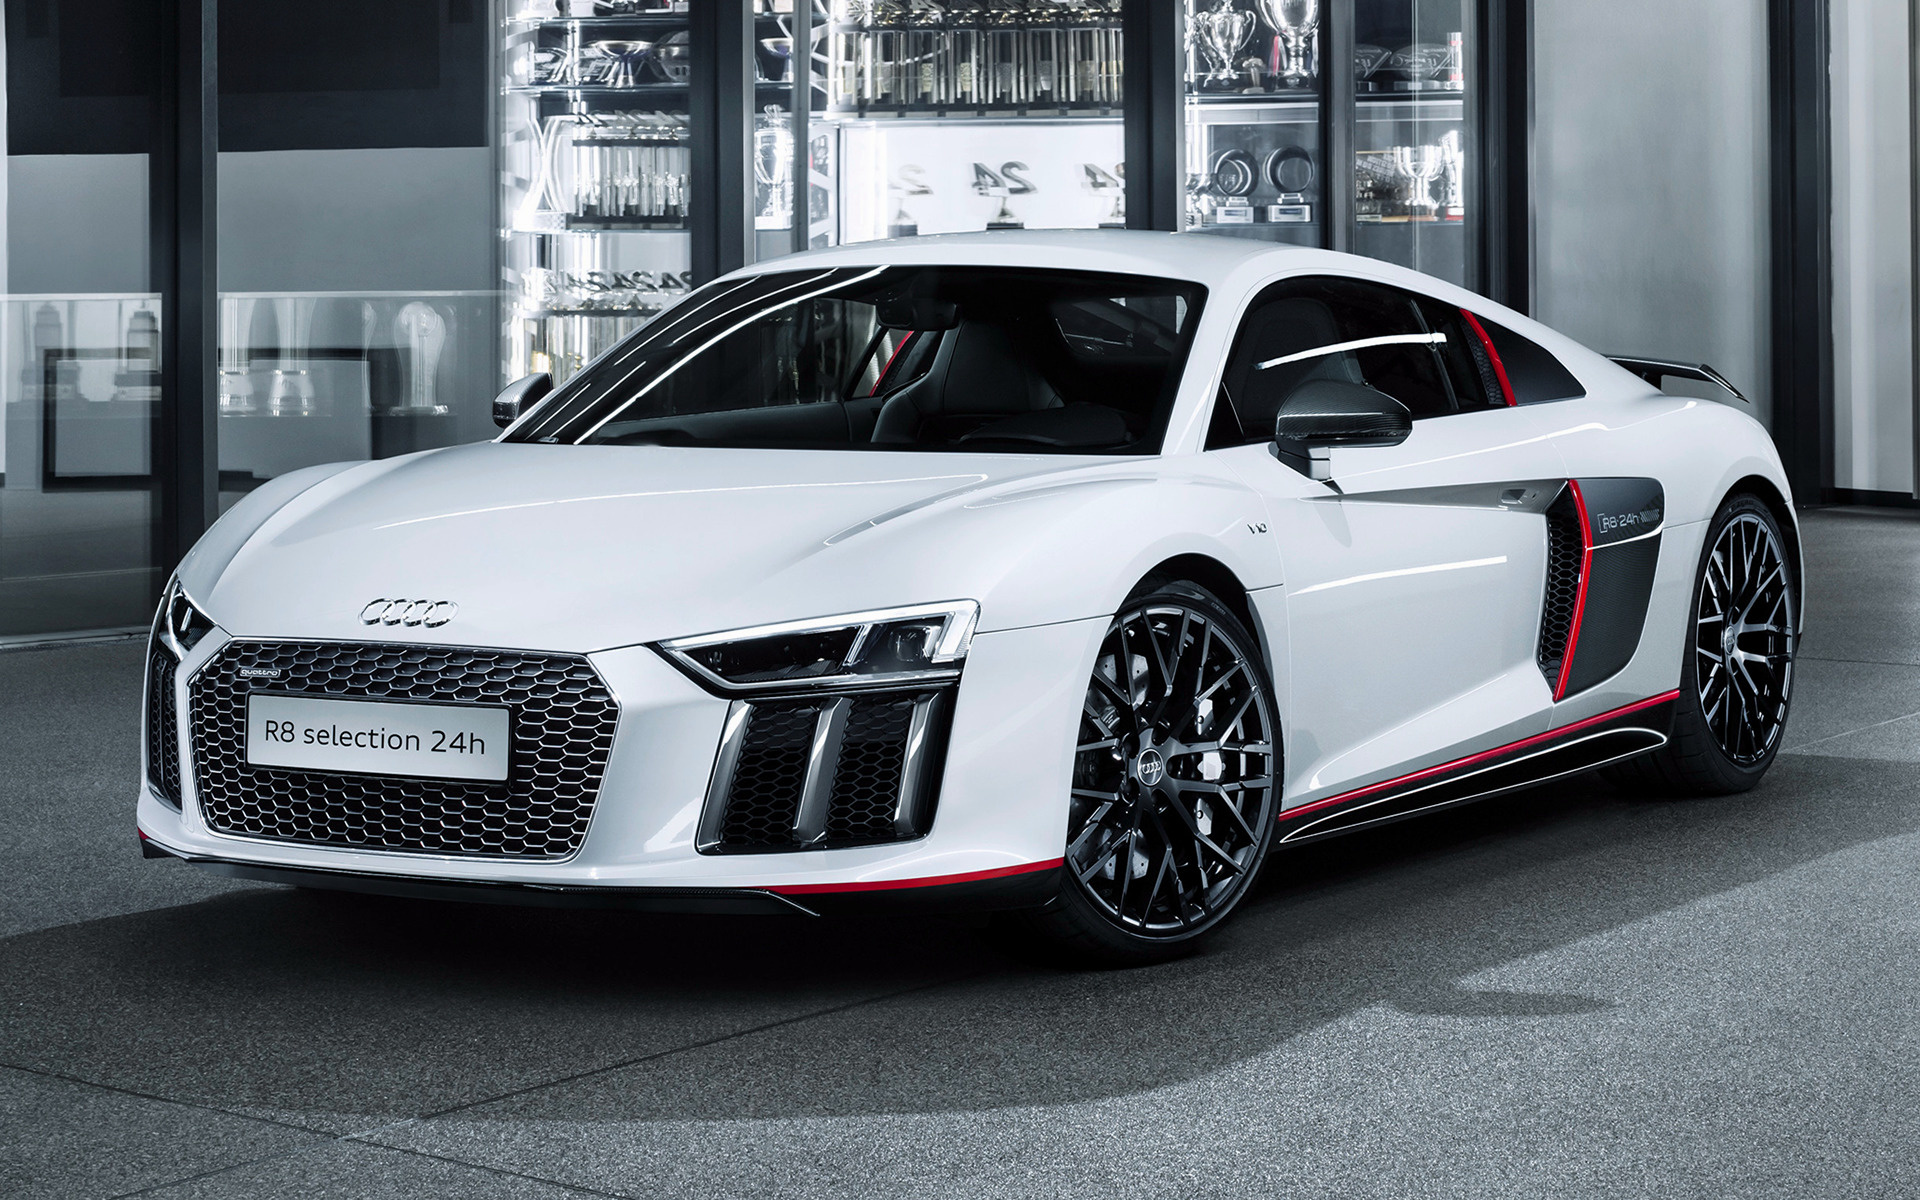 Latest R8 out of Audi stable - New R8 Speeds Out of Audi Stable